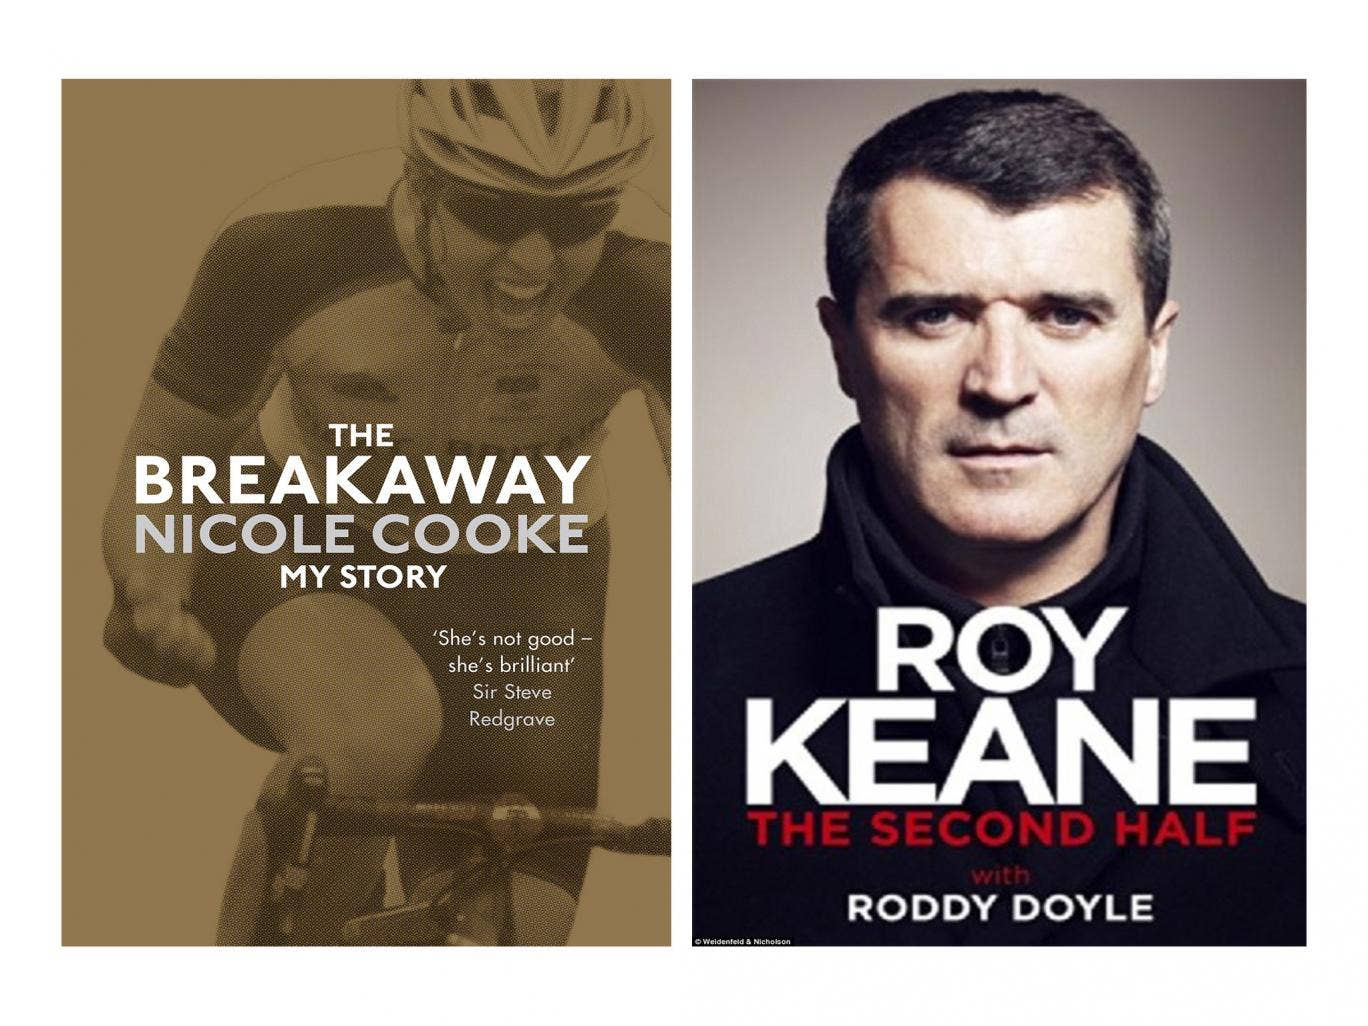 Sports biographies and autobiographies